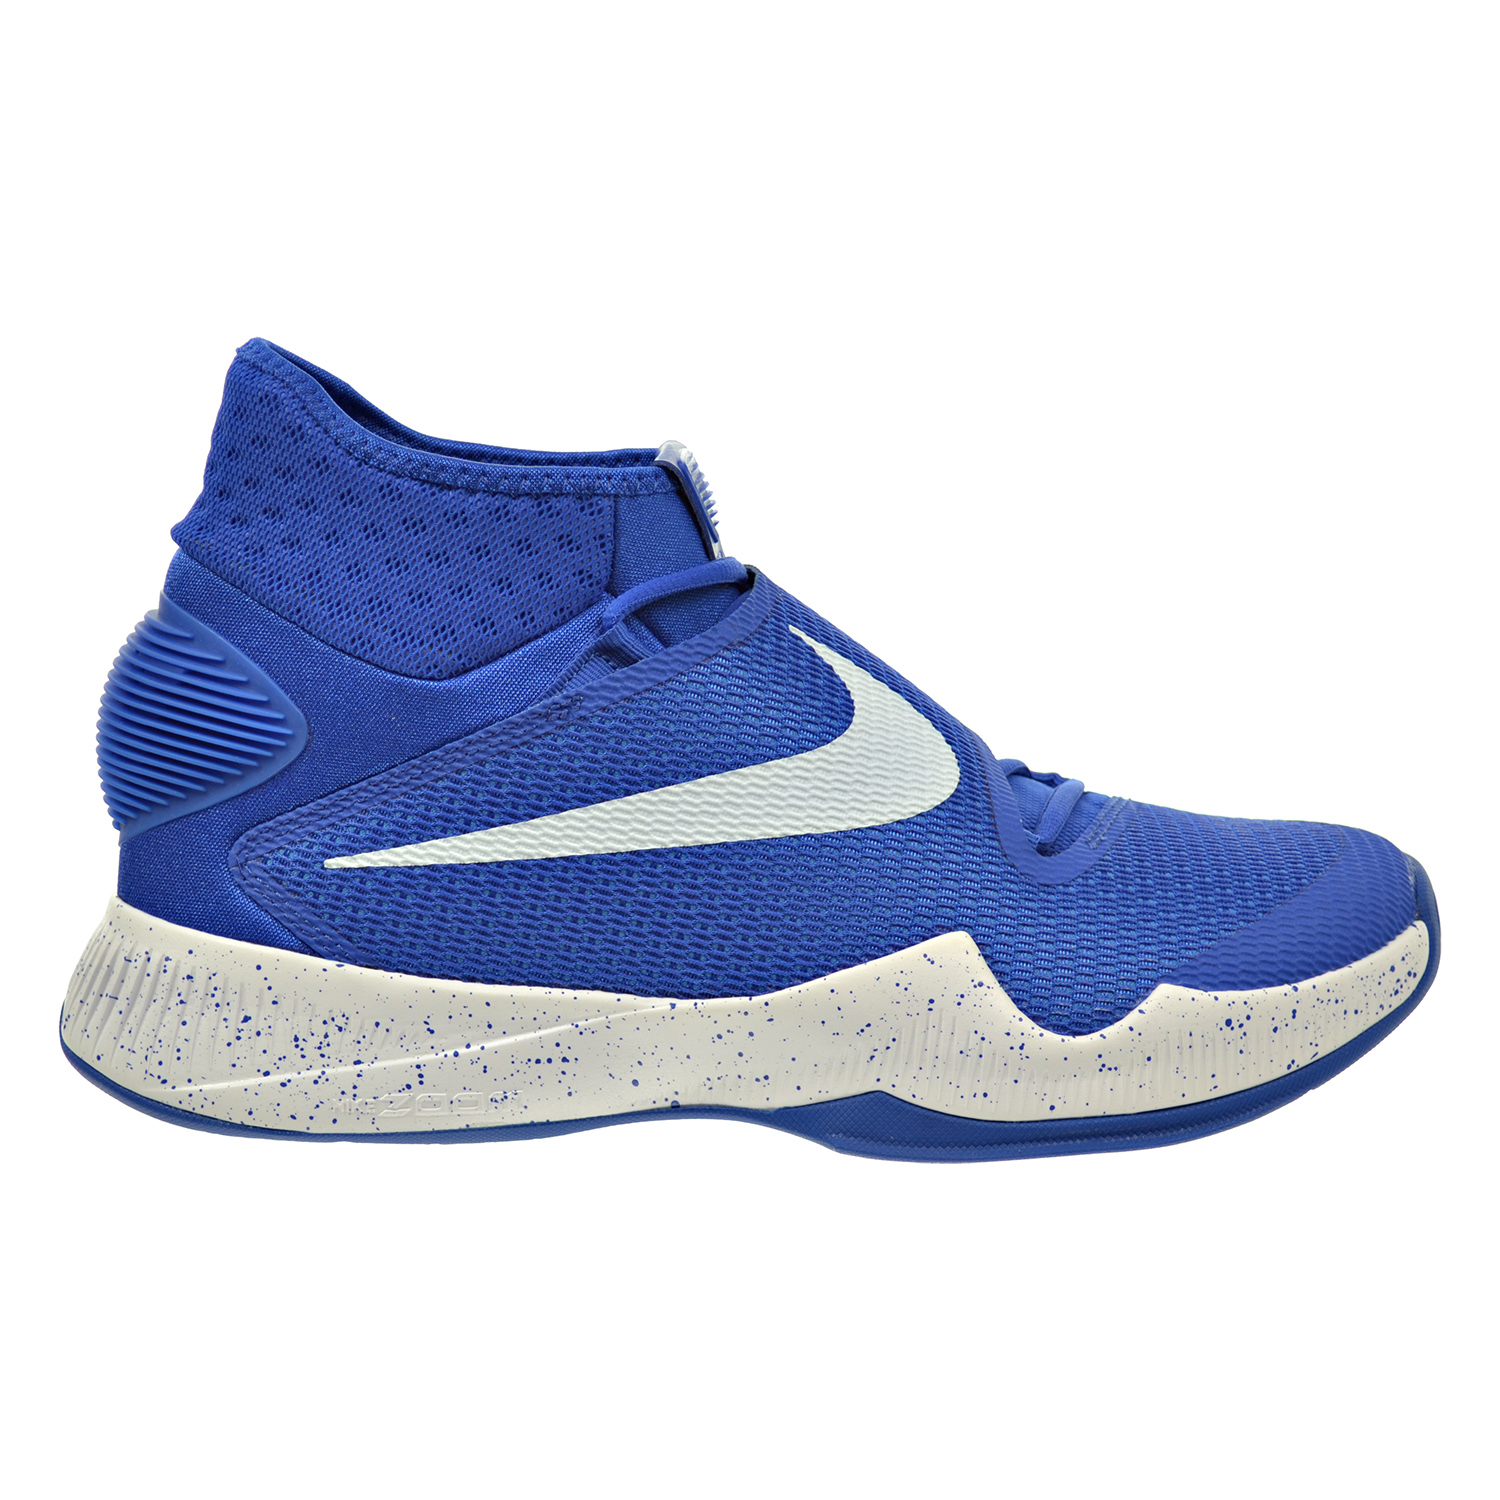 Nike Zoom Hyperrev 2016 Men's Shoes Game Royal/White/Fountain Blue  820224-415